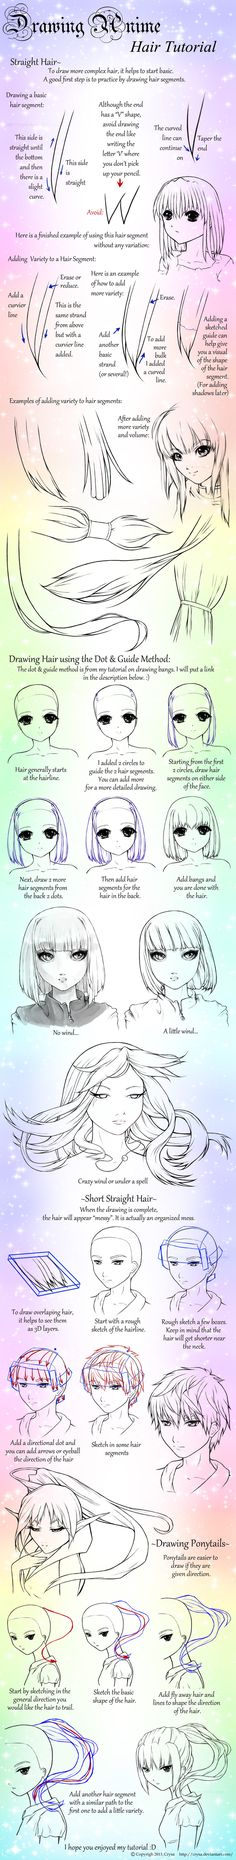 Drawing Anime: Straight Hair and Ponytails by Crysa on DeviantArt